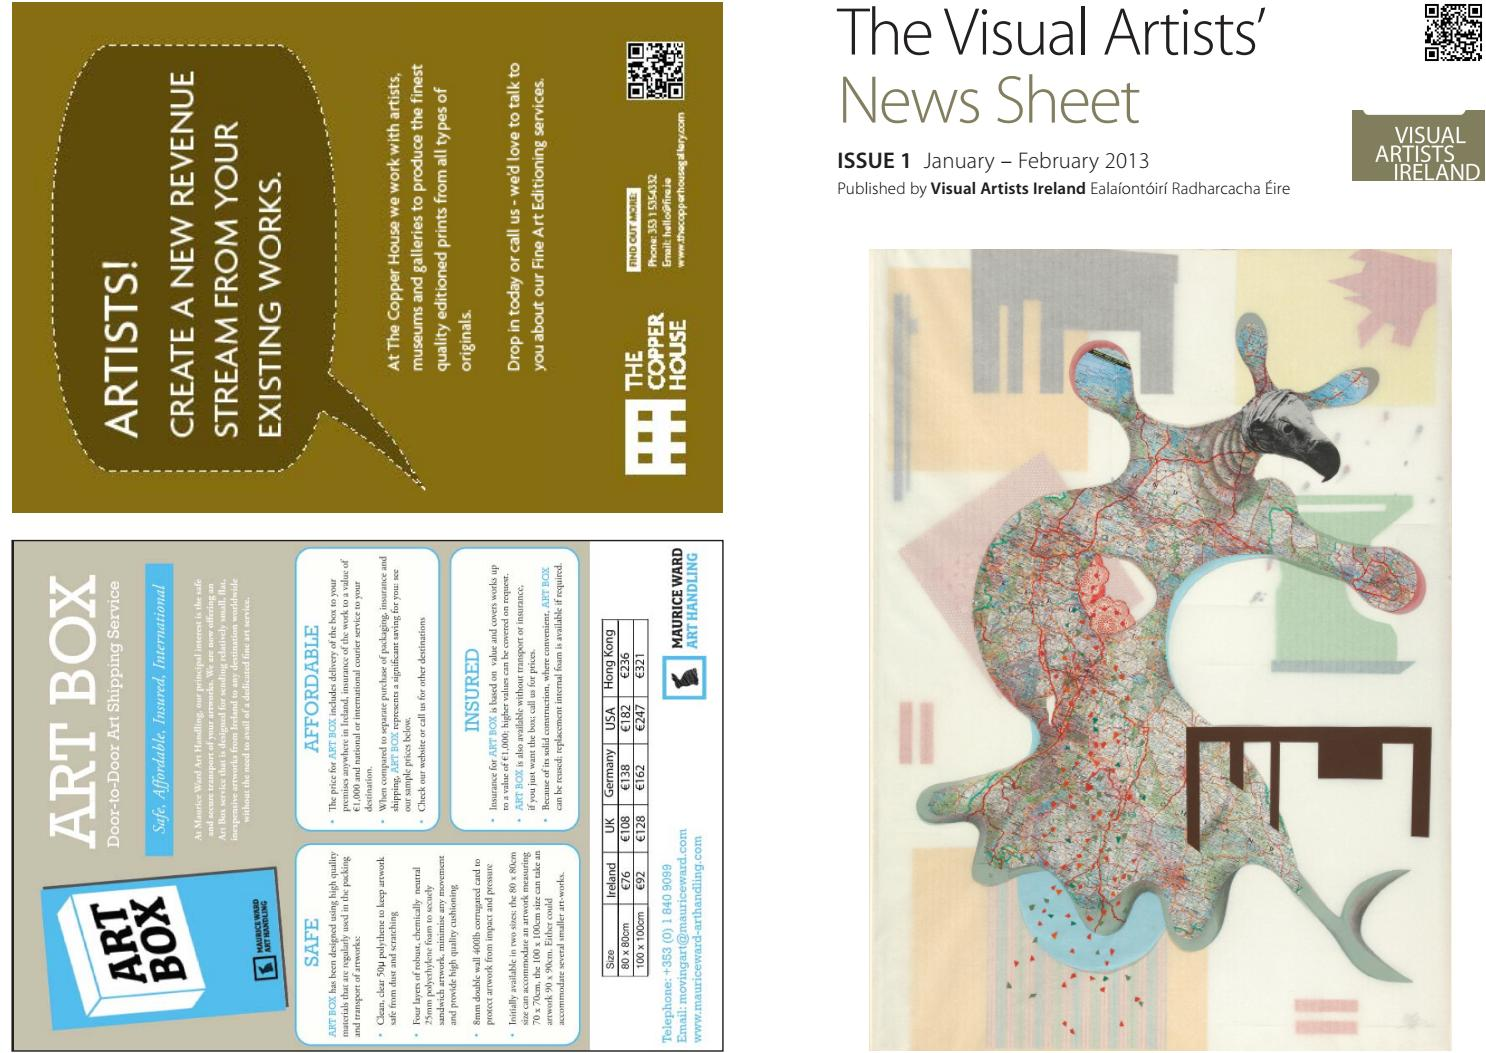 313e8bd2f6b Visual Artists  News Sheet - 2013 January February by VisualArtistsIreland  - issuu